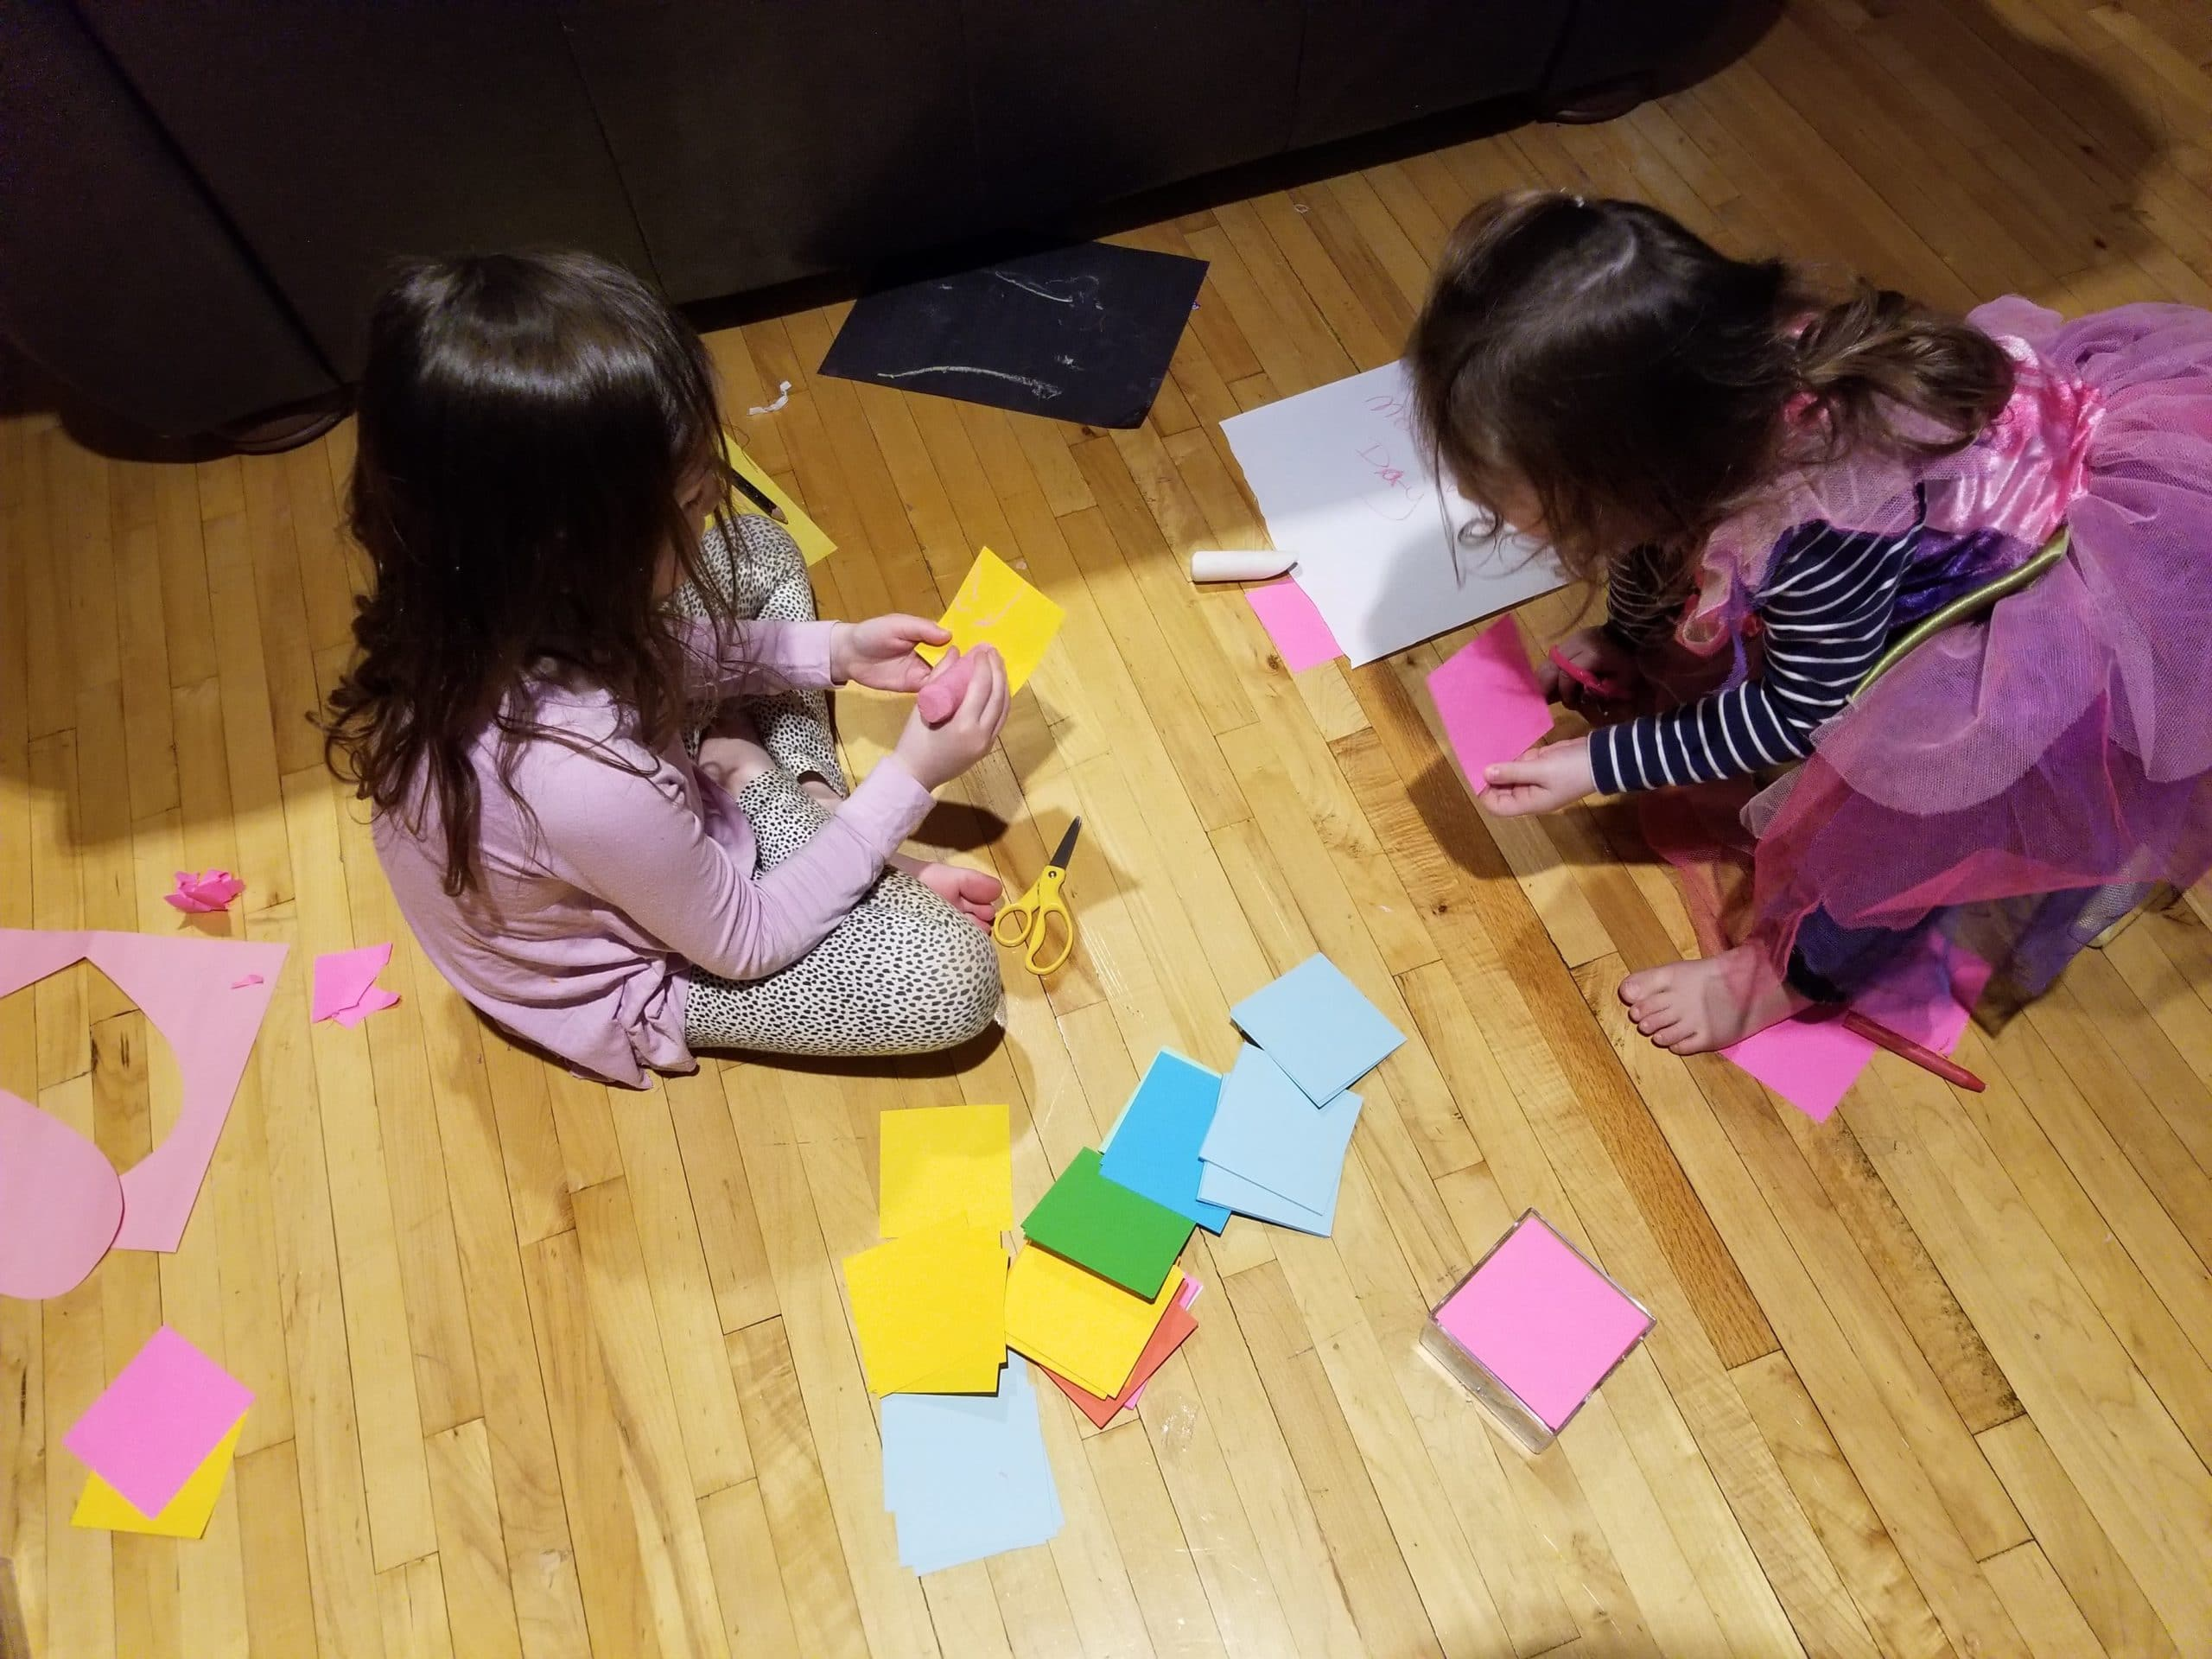 Creating paper Memories for mom #HowLifeUnfolds